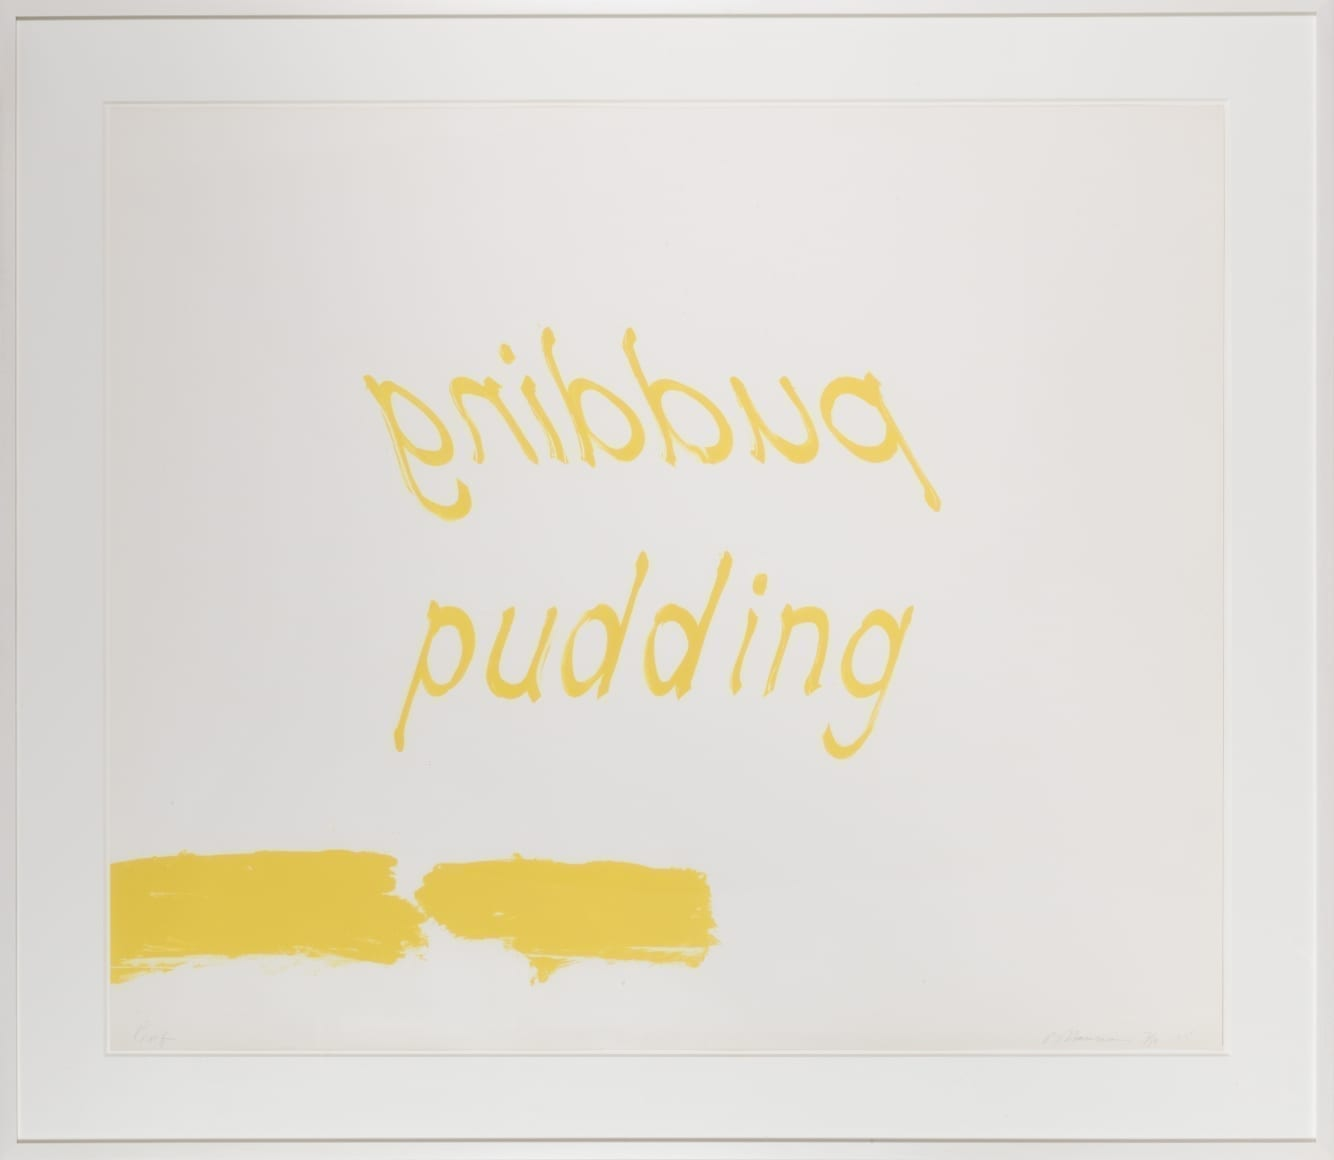 Proof of Pudding, 1975